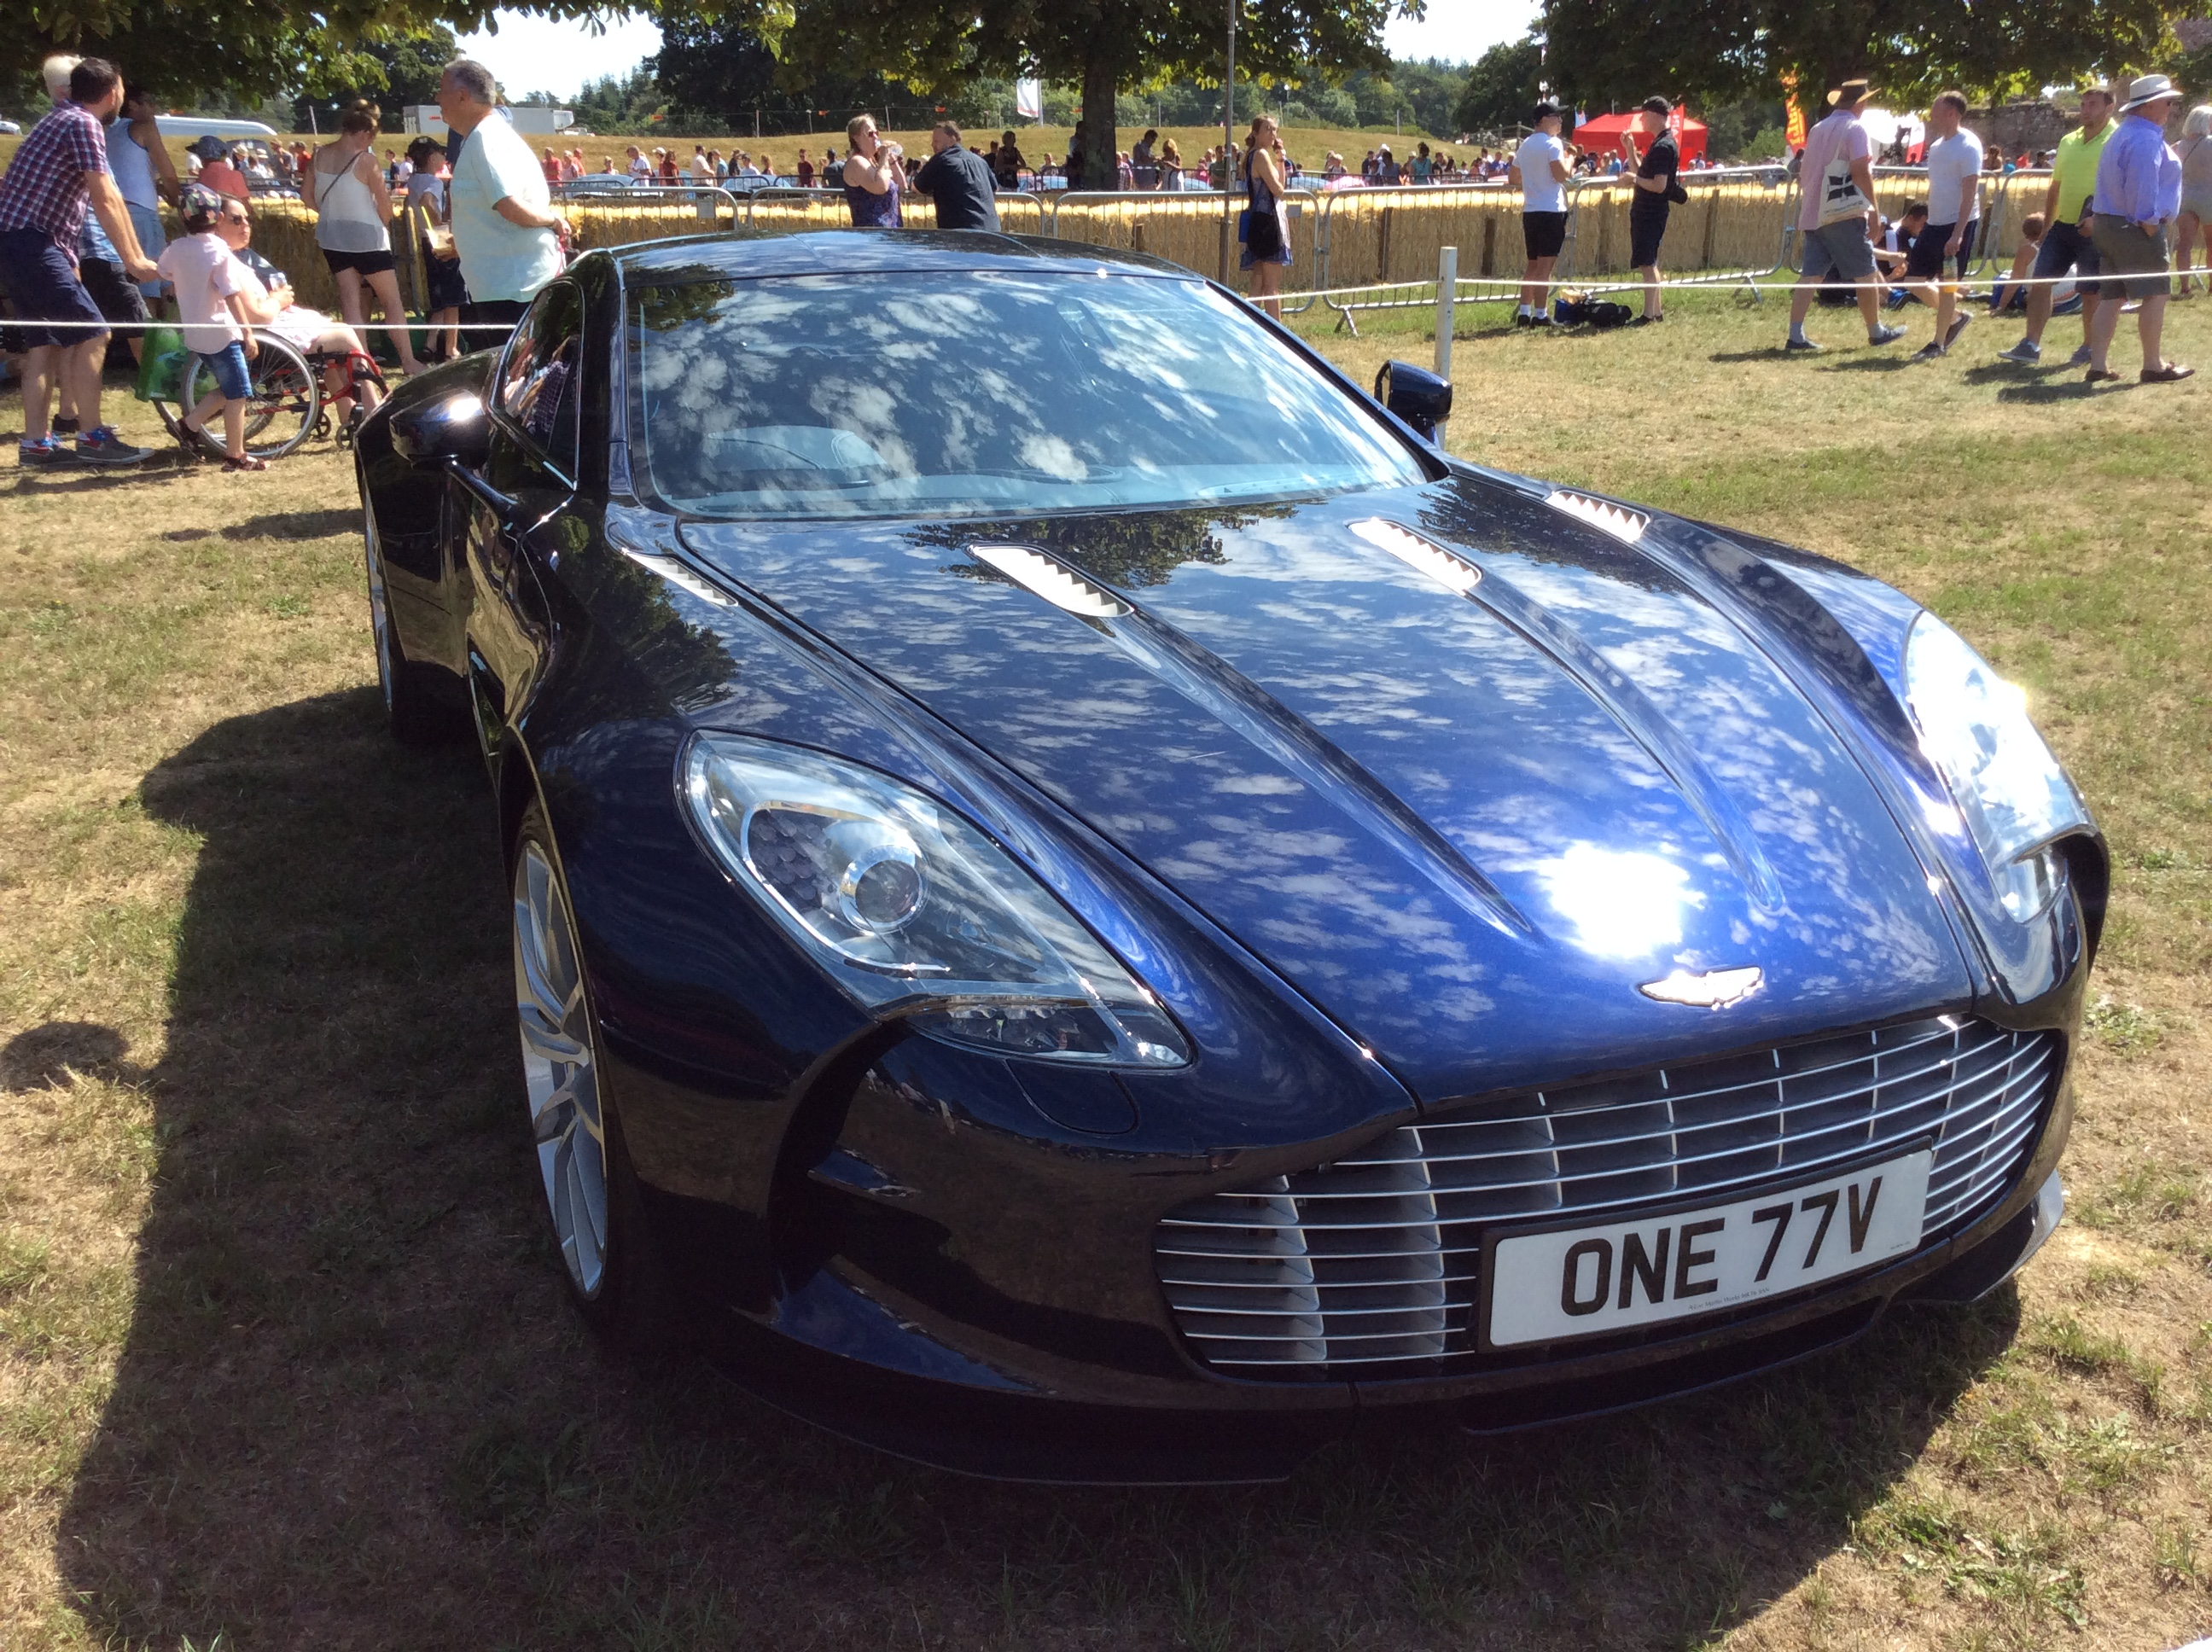 File 2014 Aston Martin One 77 V12 Auto One 77v Jpg Wikimedia Commons